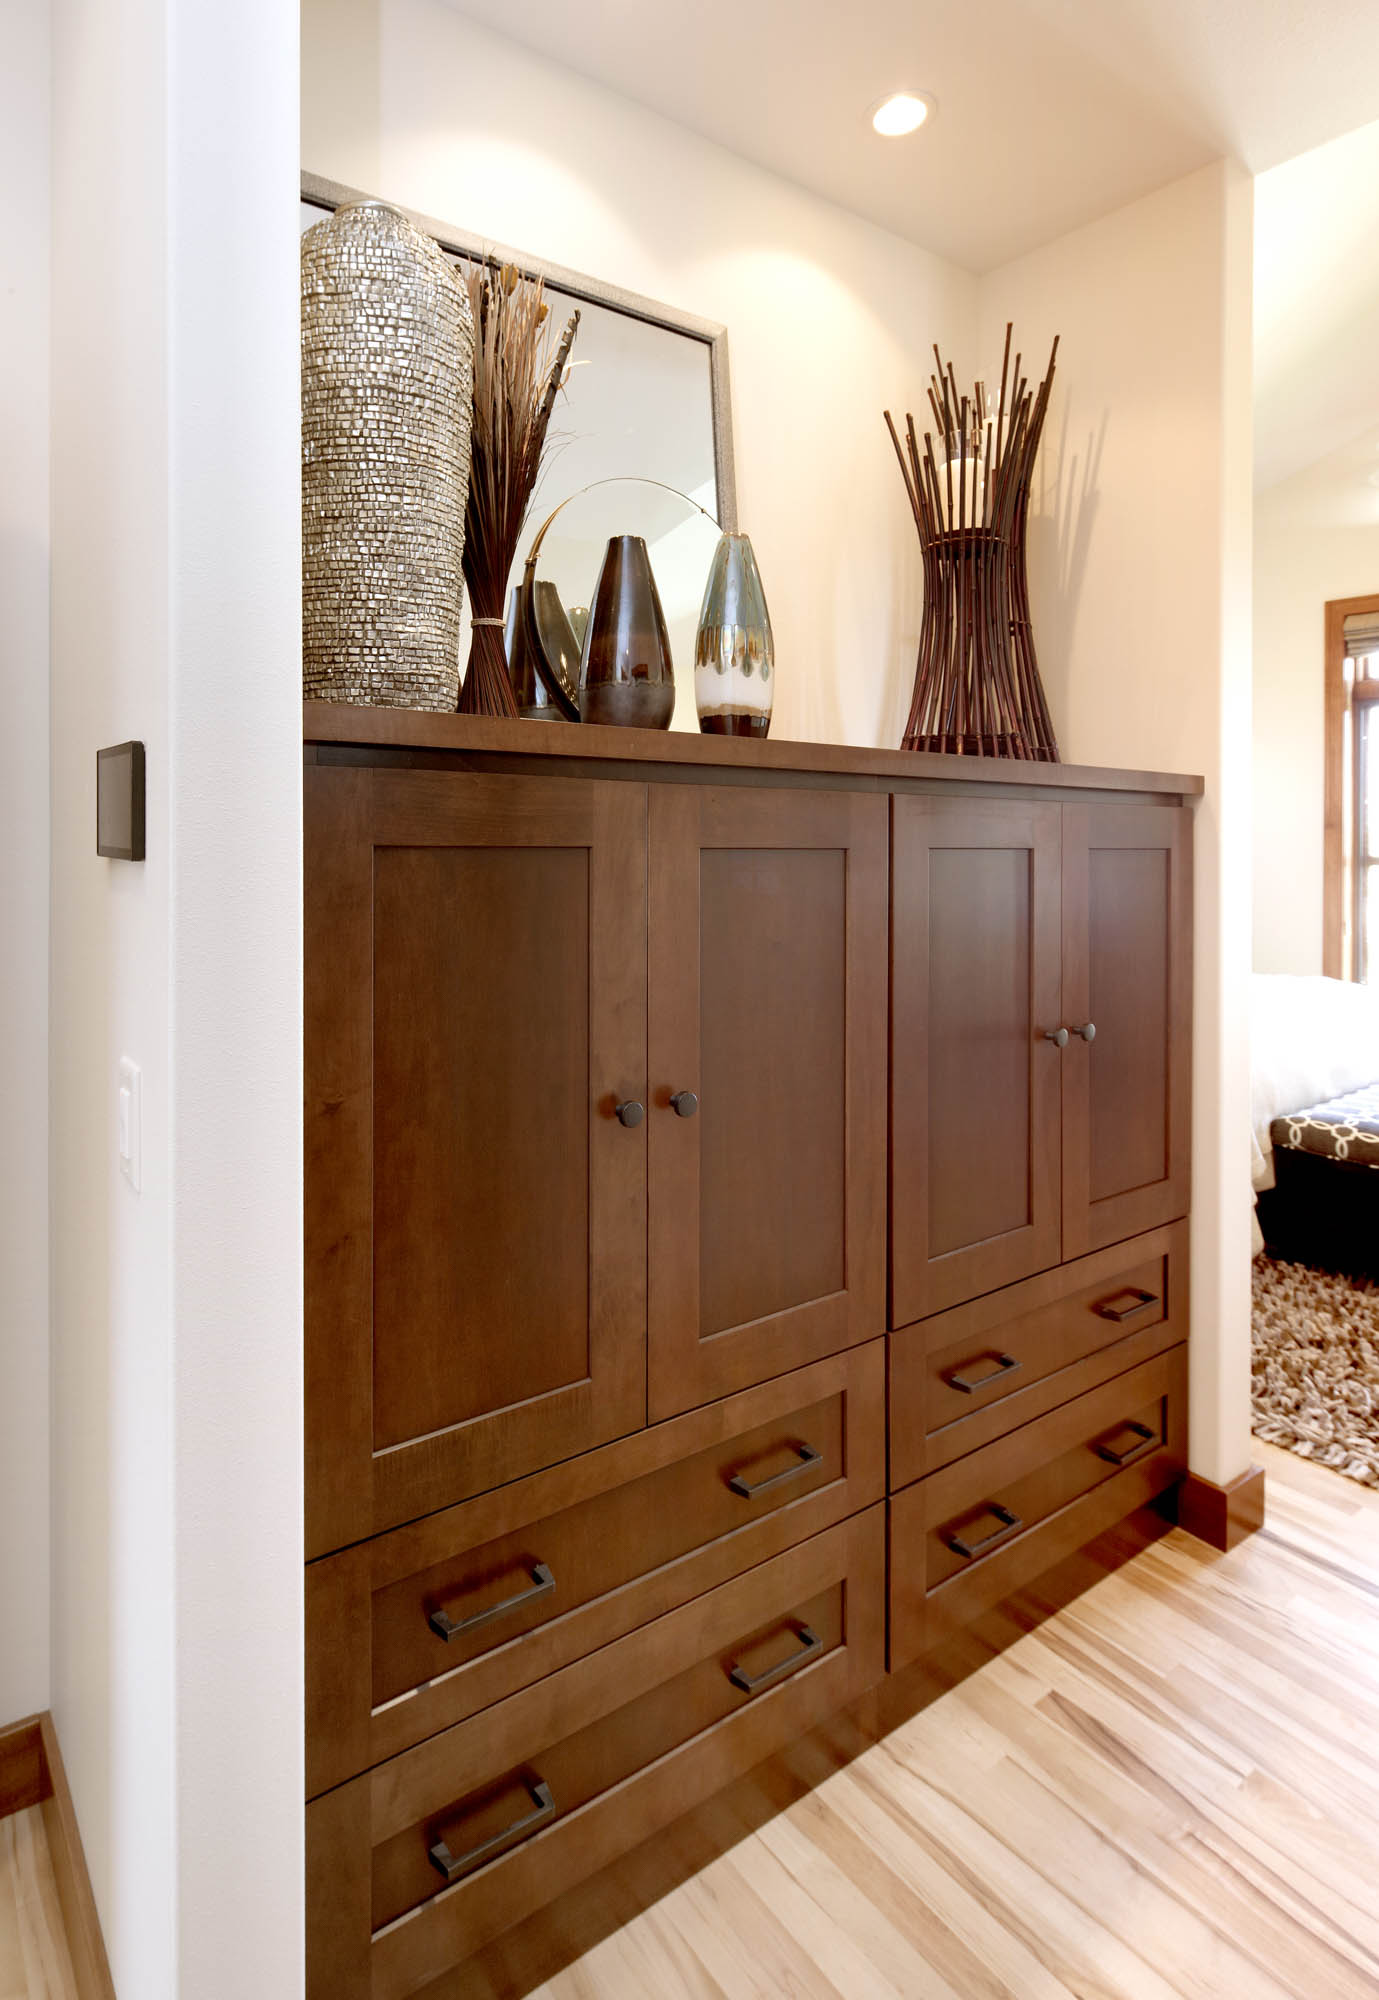 Stained master bedroom cabinets in Harvest and Autumn by Showplace Cabinetry - view 1